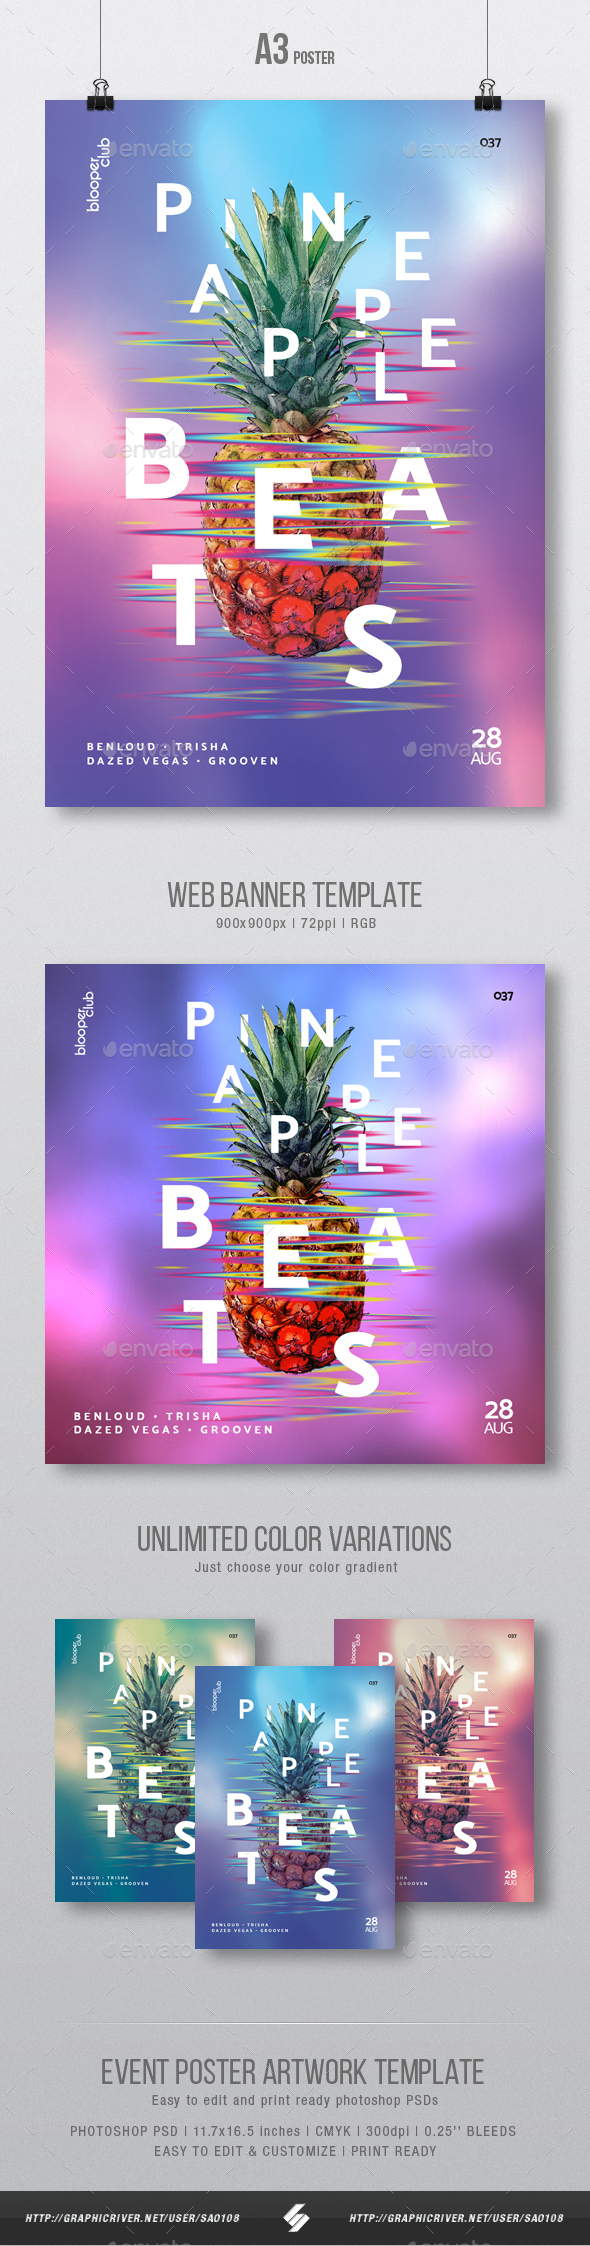 Pineapple Beats - Creative Party Flyer / Poster Artwork Template A3 - Clubs & Parties Events